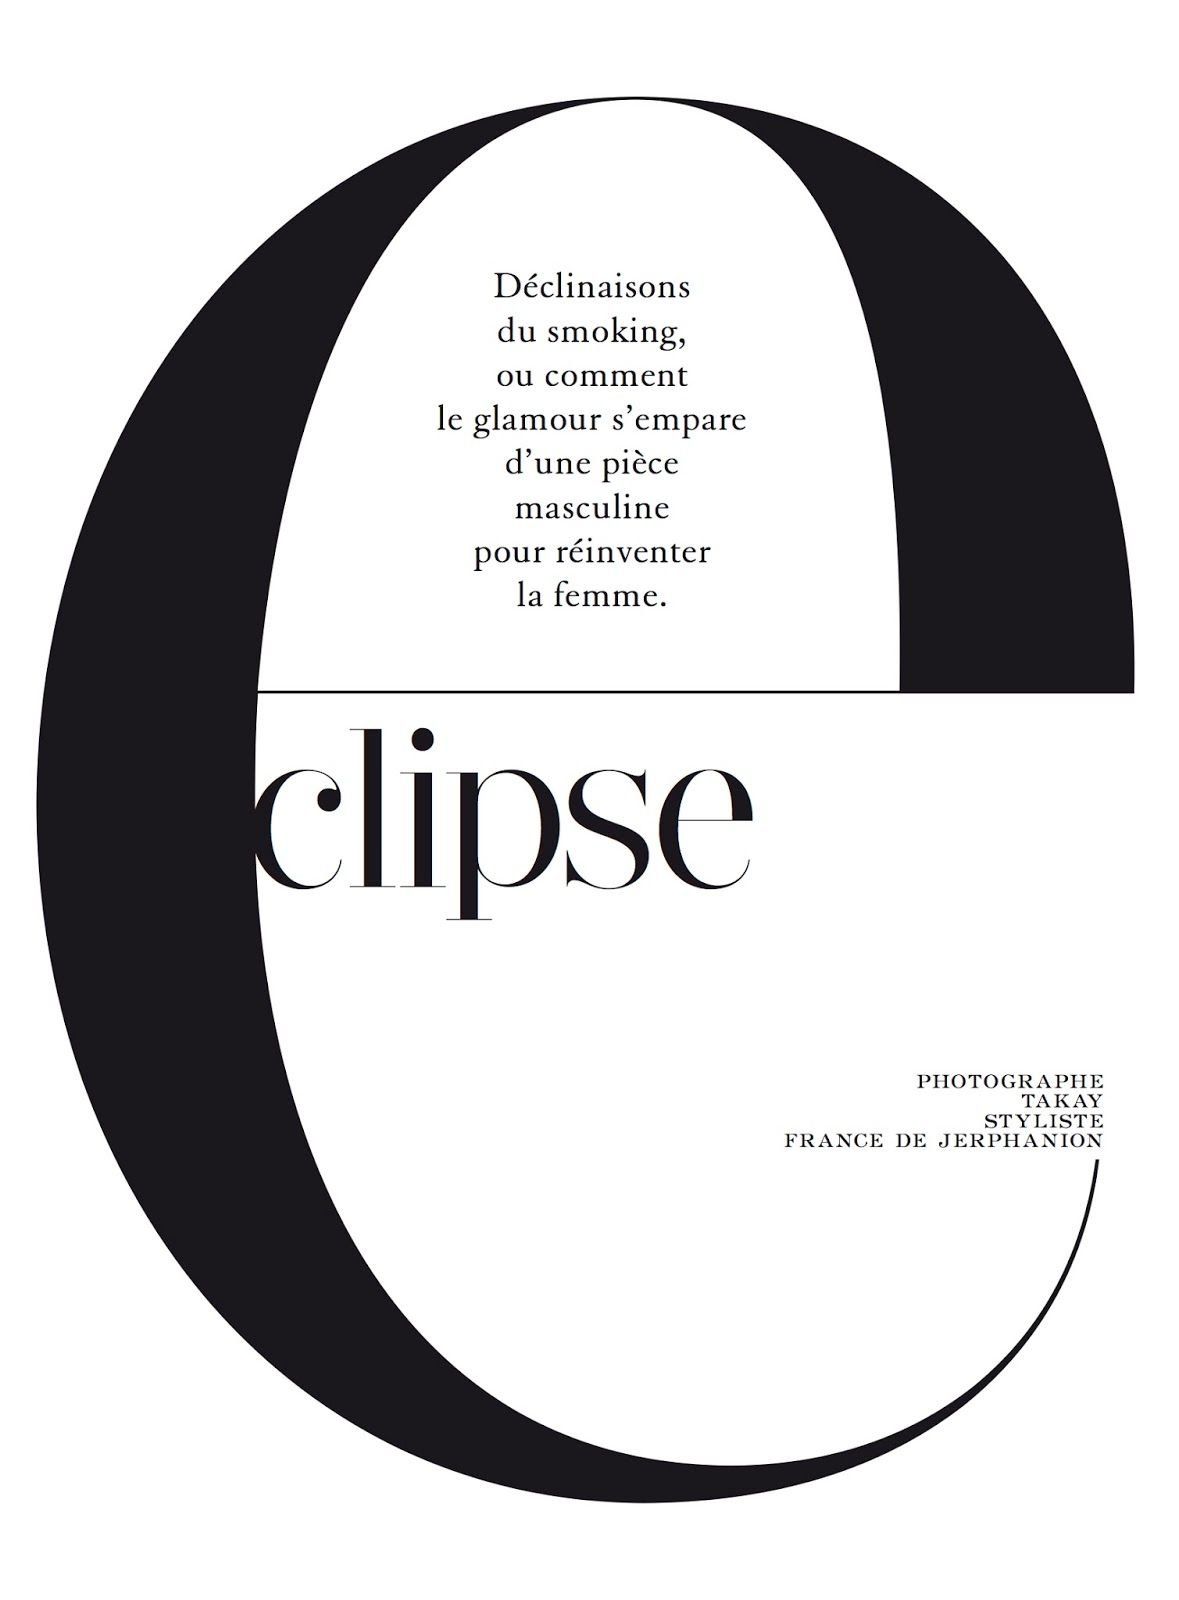 Typography for an editorial in Madame Magazine